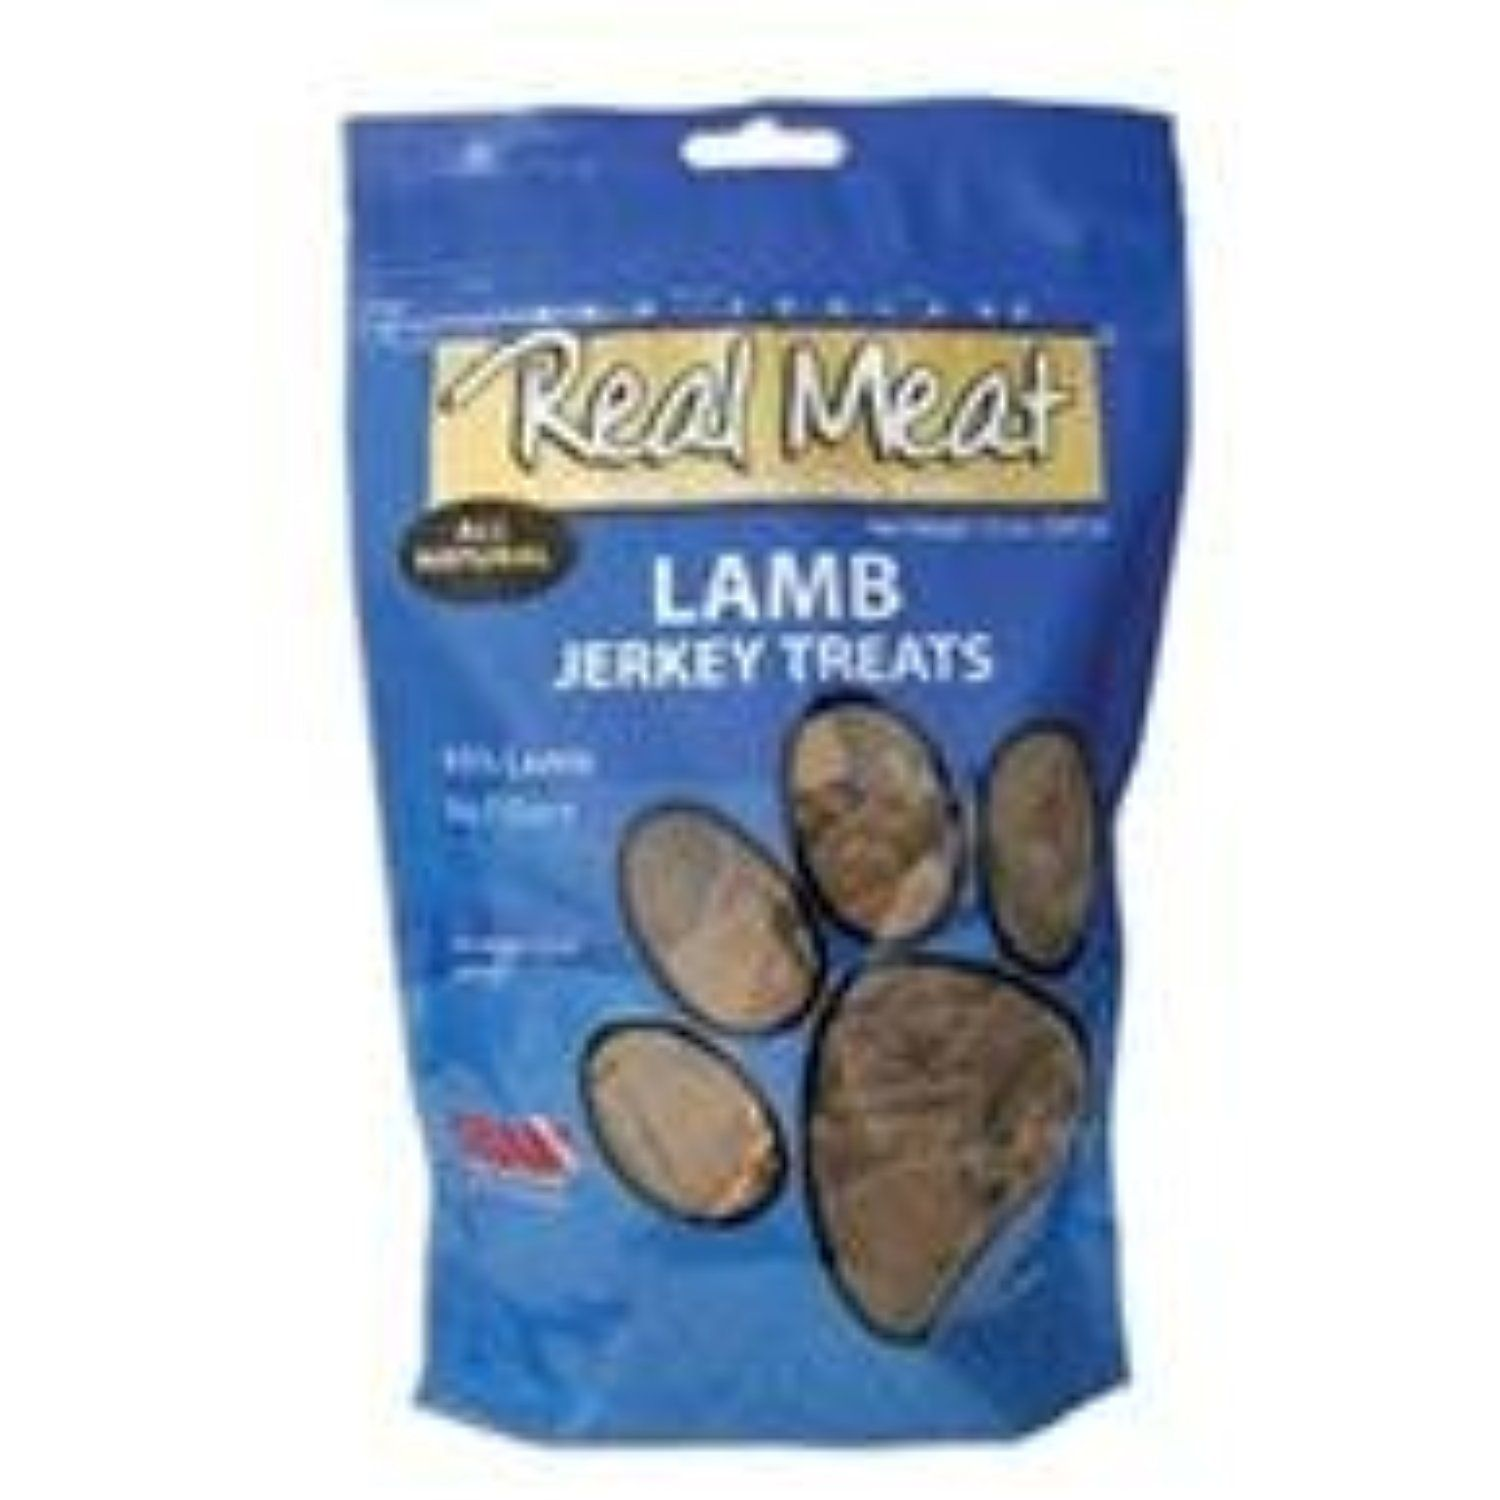 Canz Dog Jerky Trt Lmb 12Oz by The Real Meat Co You